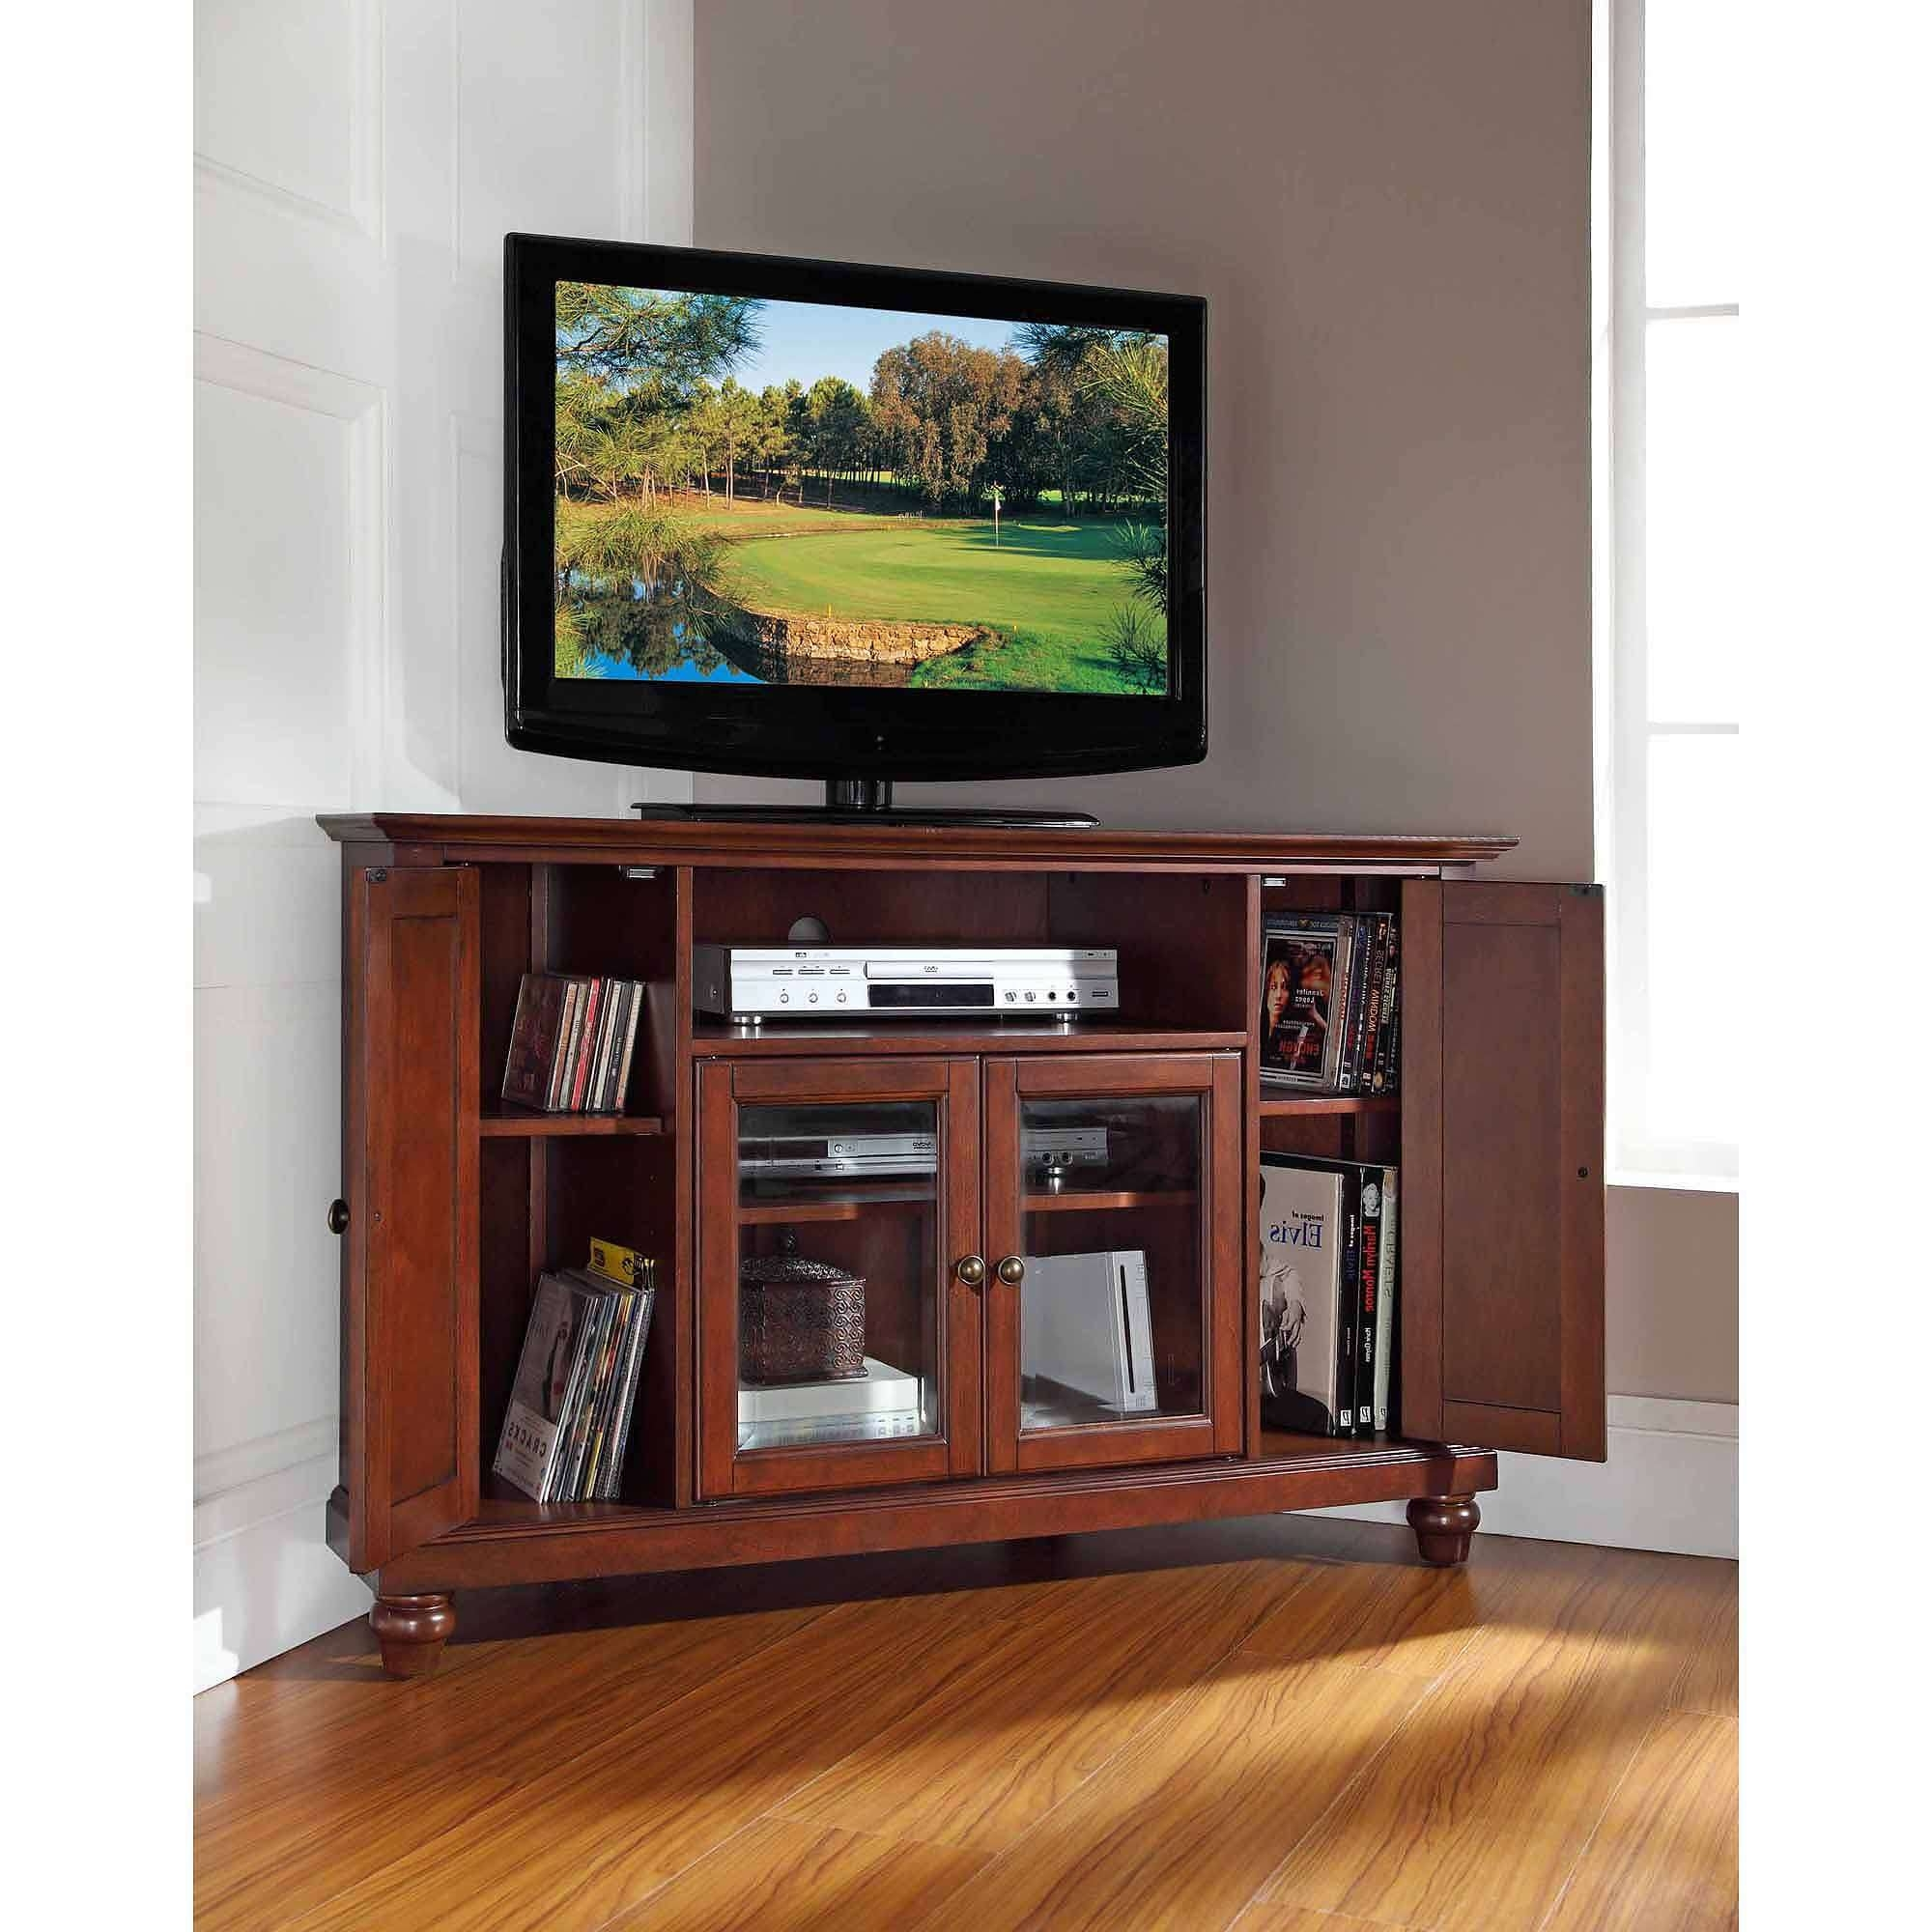 Tv : 41 Stunning 40 Inch Tv Stand Wood Photos Concept Stunning Pertaining To 40 Inch Corner Tv Stands (View 13 of 15)